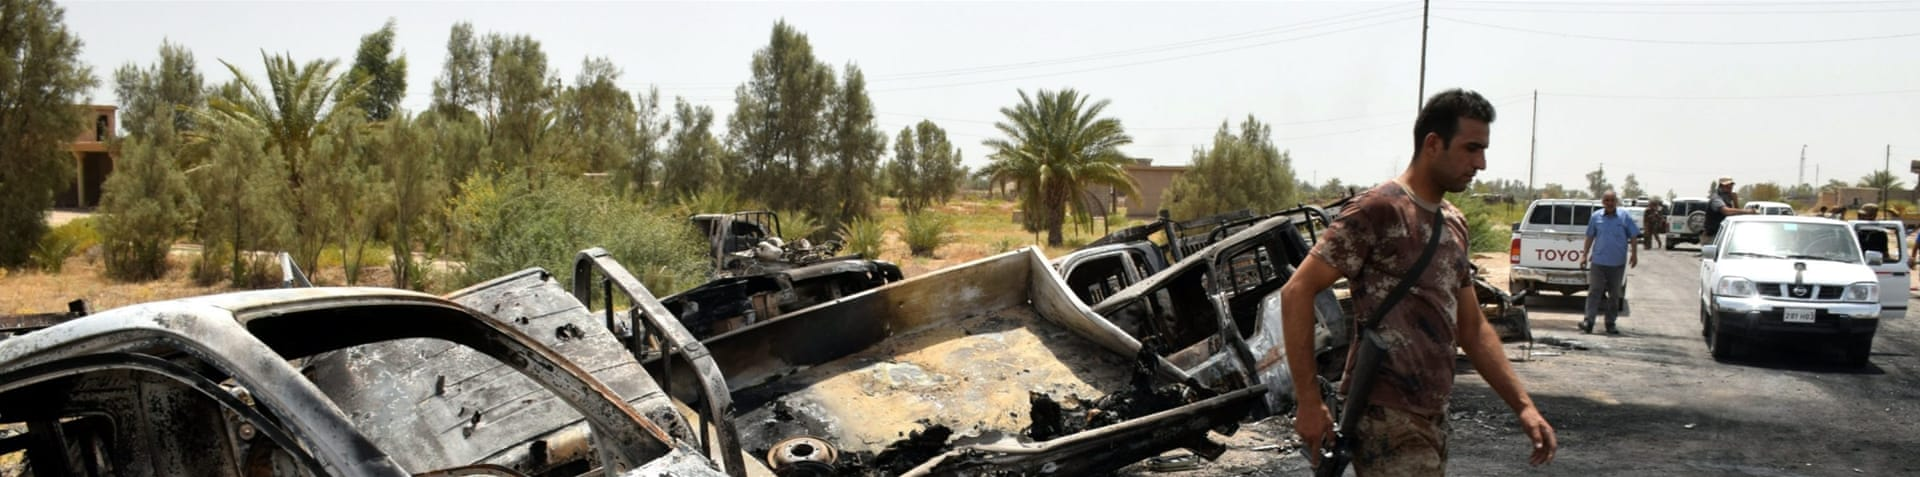 The US said it destroyed 55 vehicles with more destroyed by the Iraqi army [Nawras Aamer/EPA]